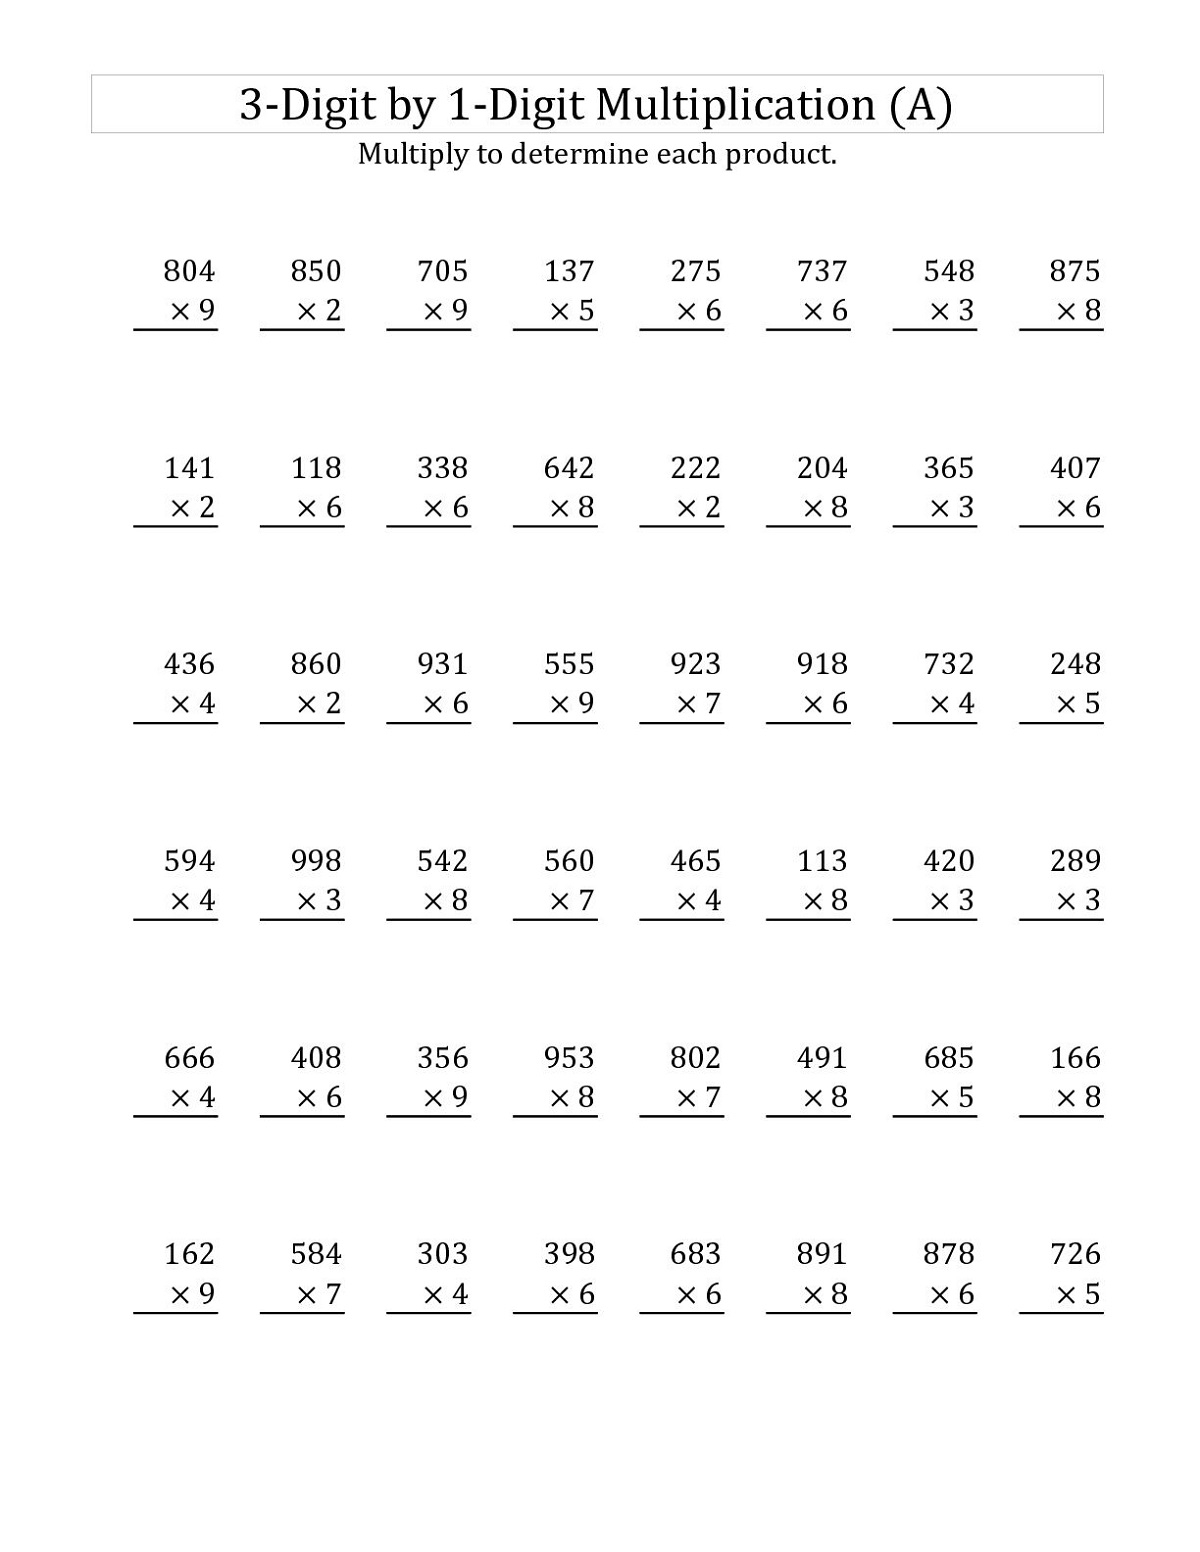 Worksheet For Class 3 On Multiplication | Printable inside Printable Multiplication By 3 Worksheets